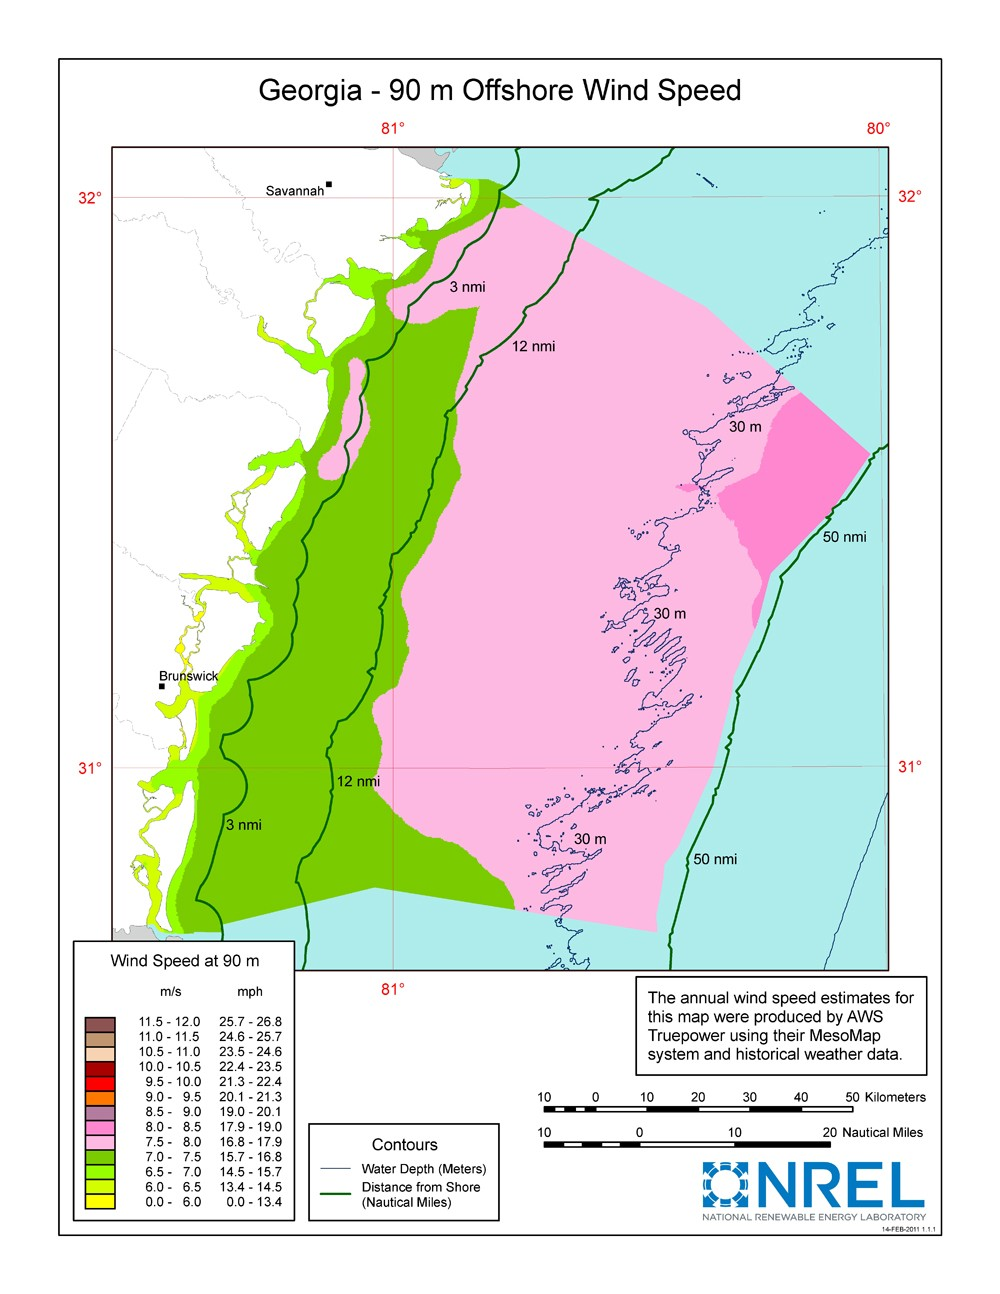 A map of Georgia showing offshore wind speeds.